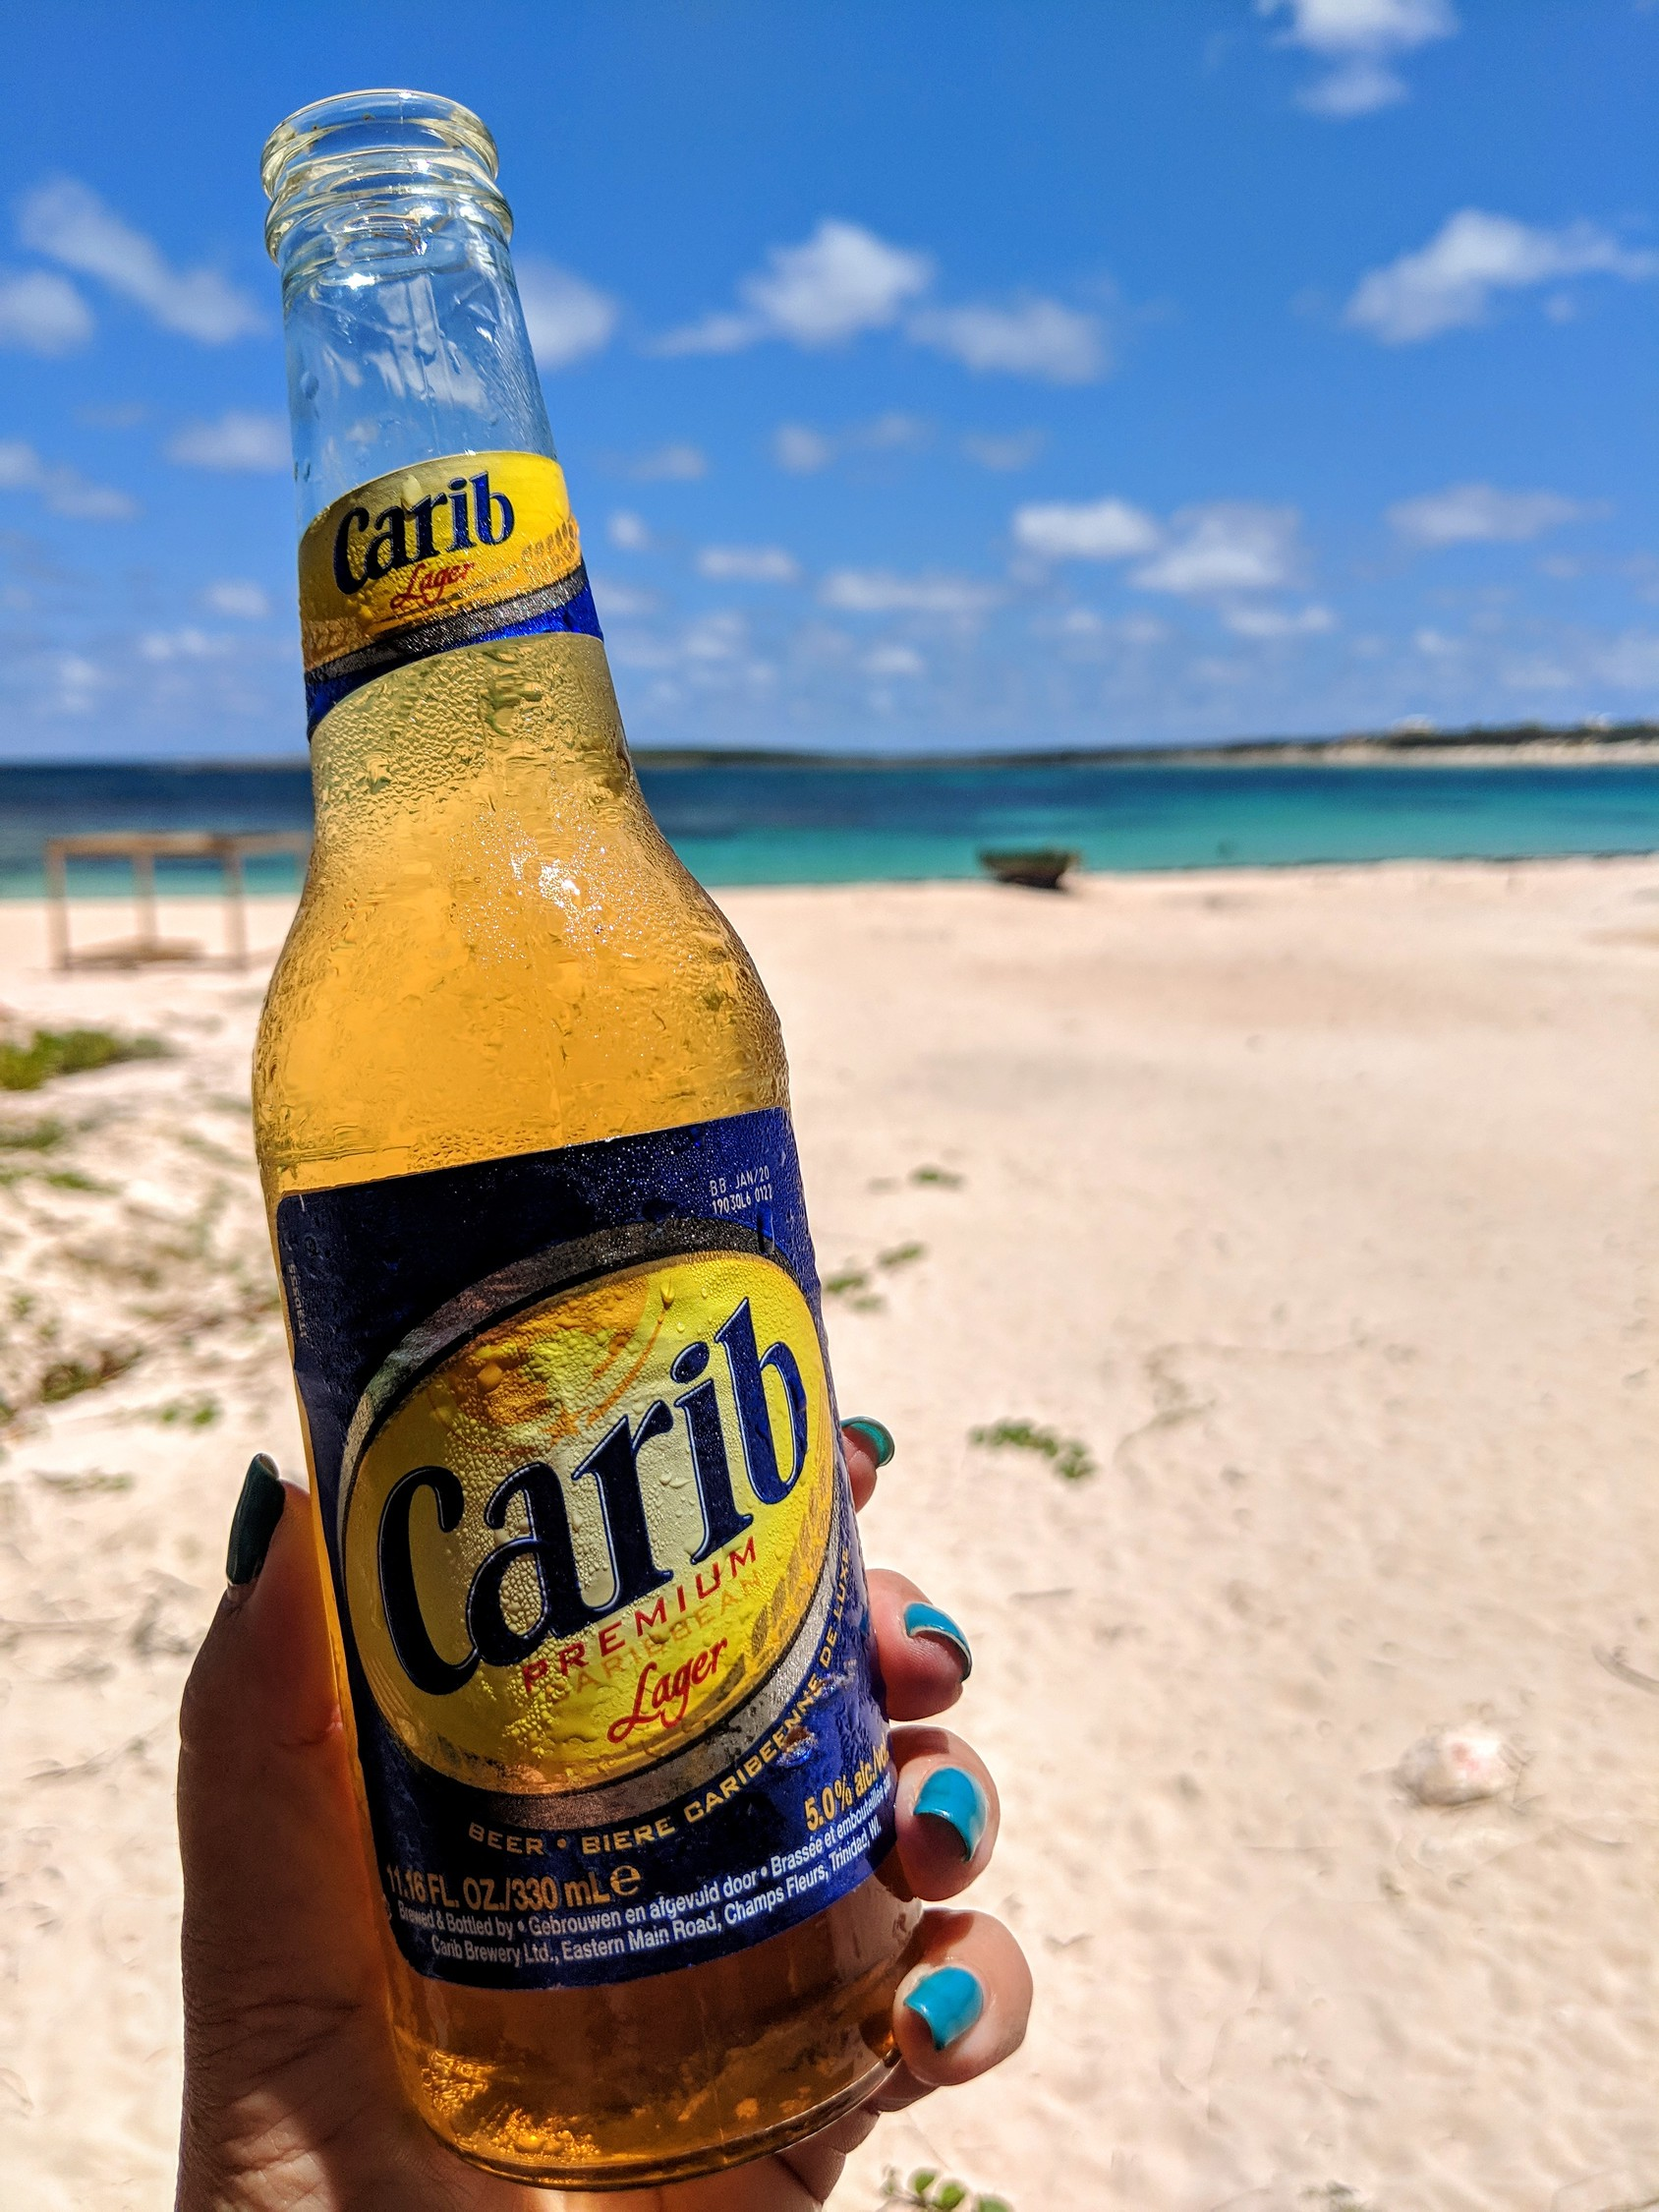 Carib beer in Anguilla is a common drink found in the Caribbean.